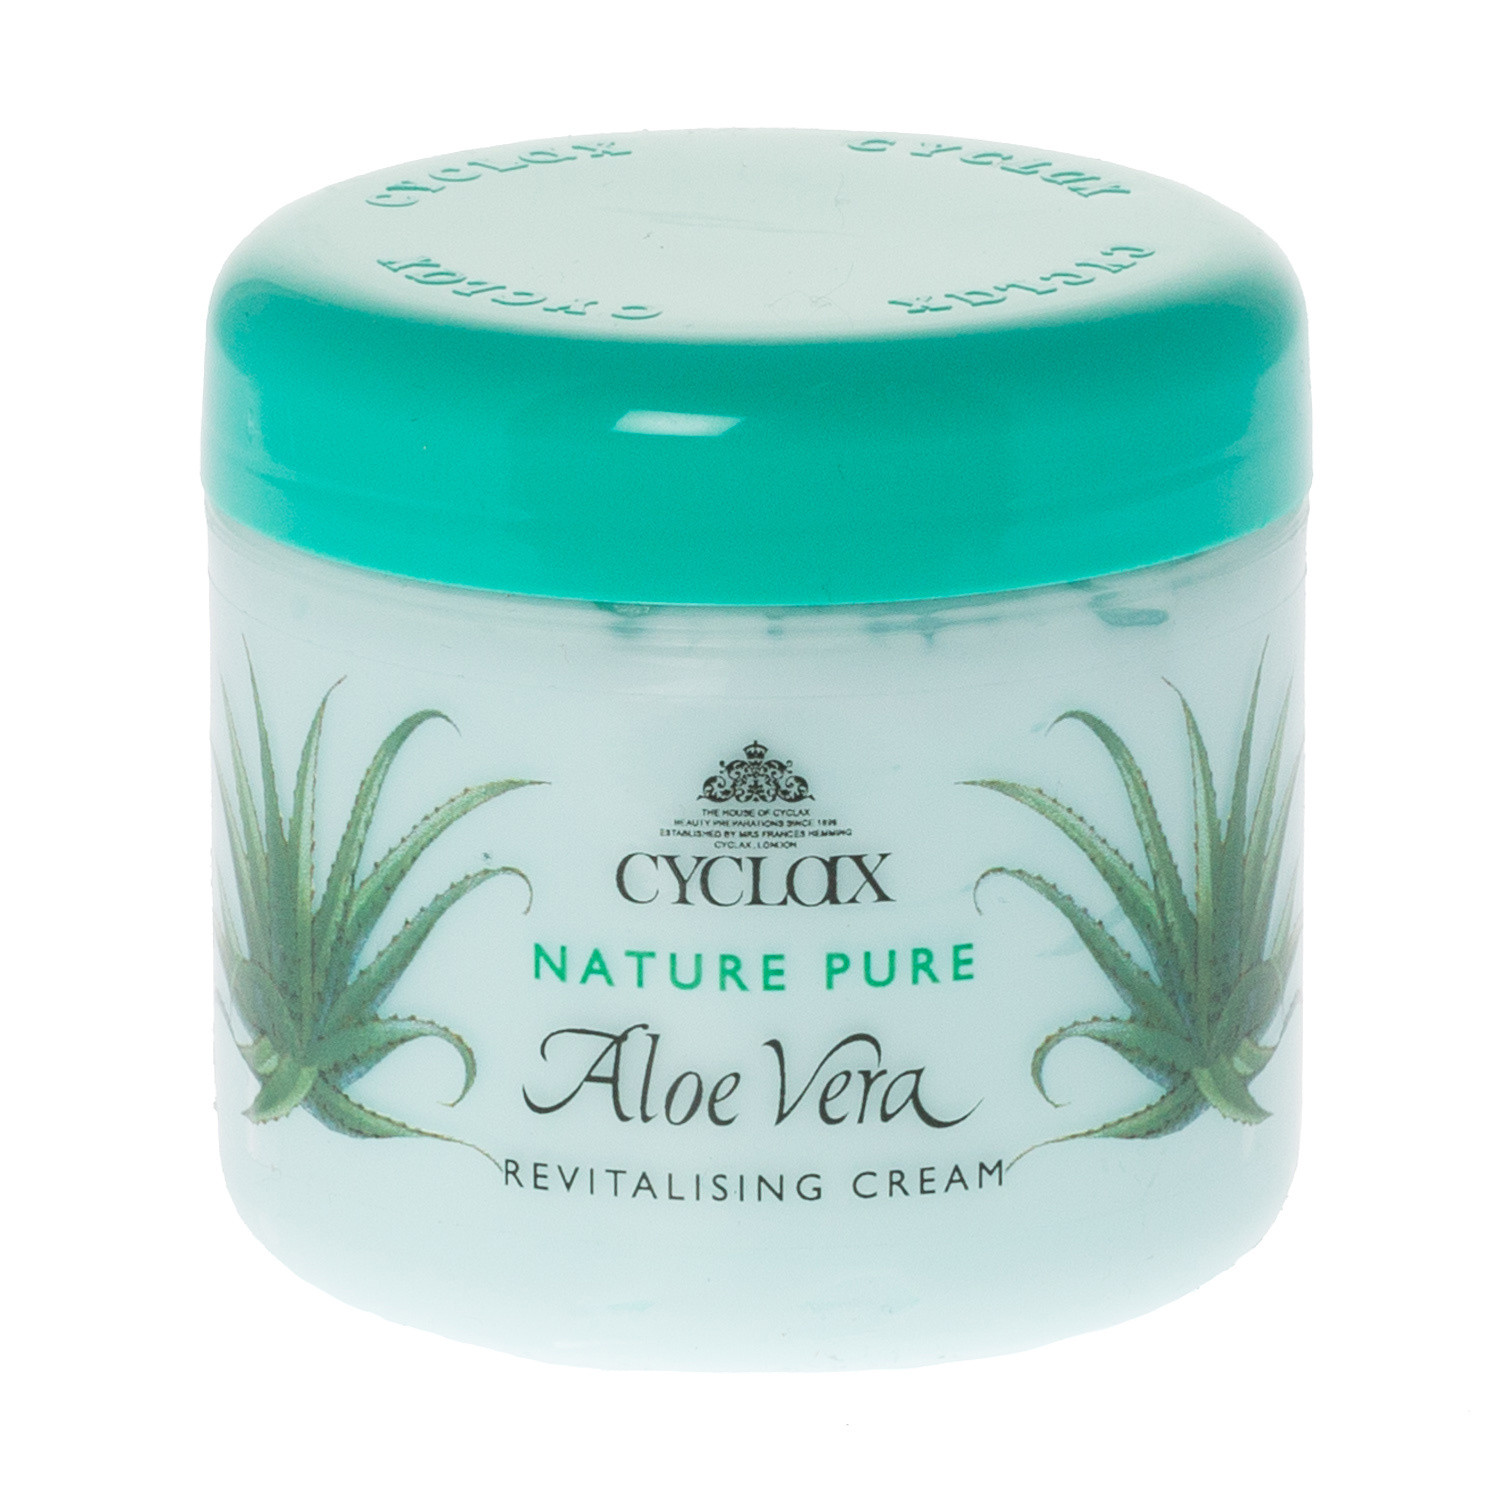 Cyclax Aloe Vera Revitalising Cream